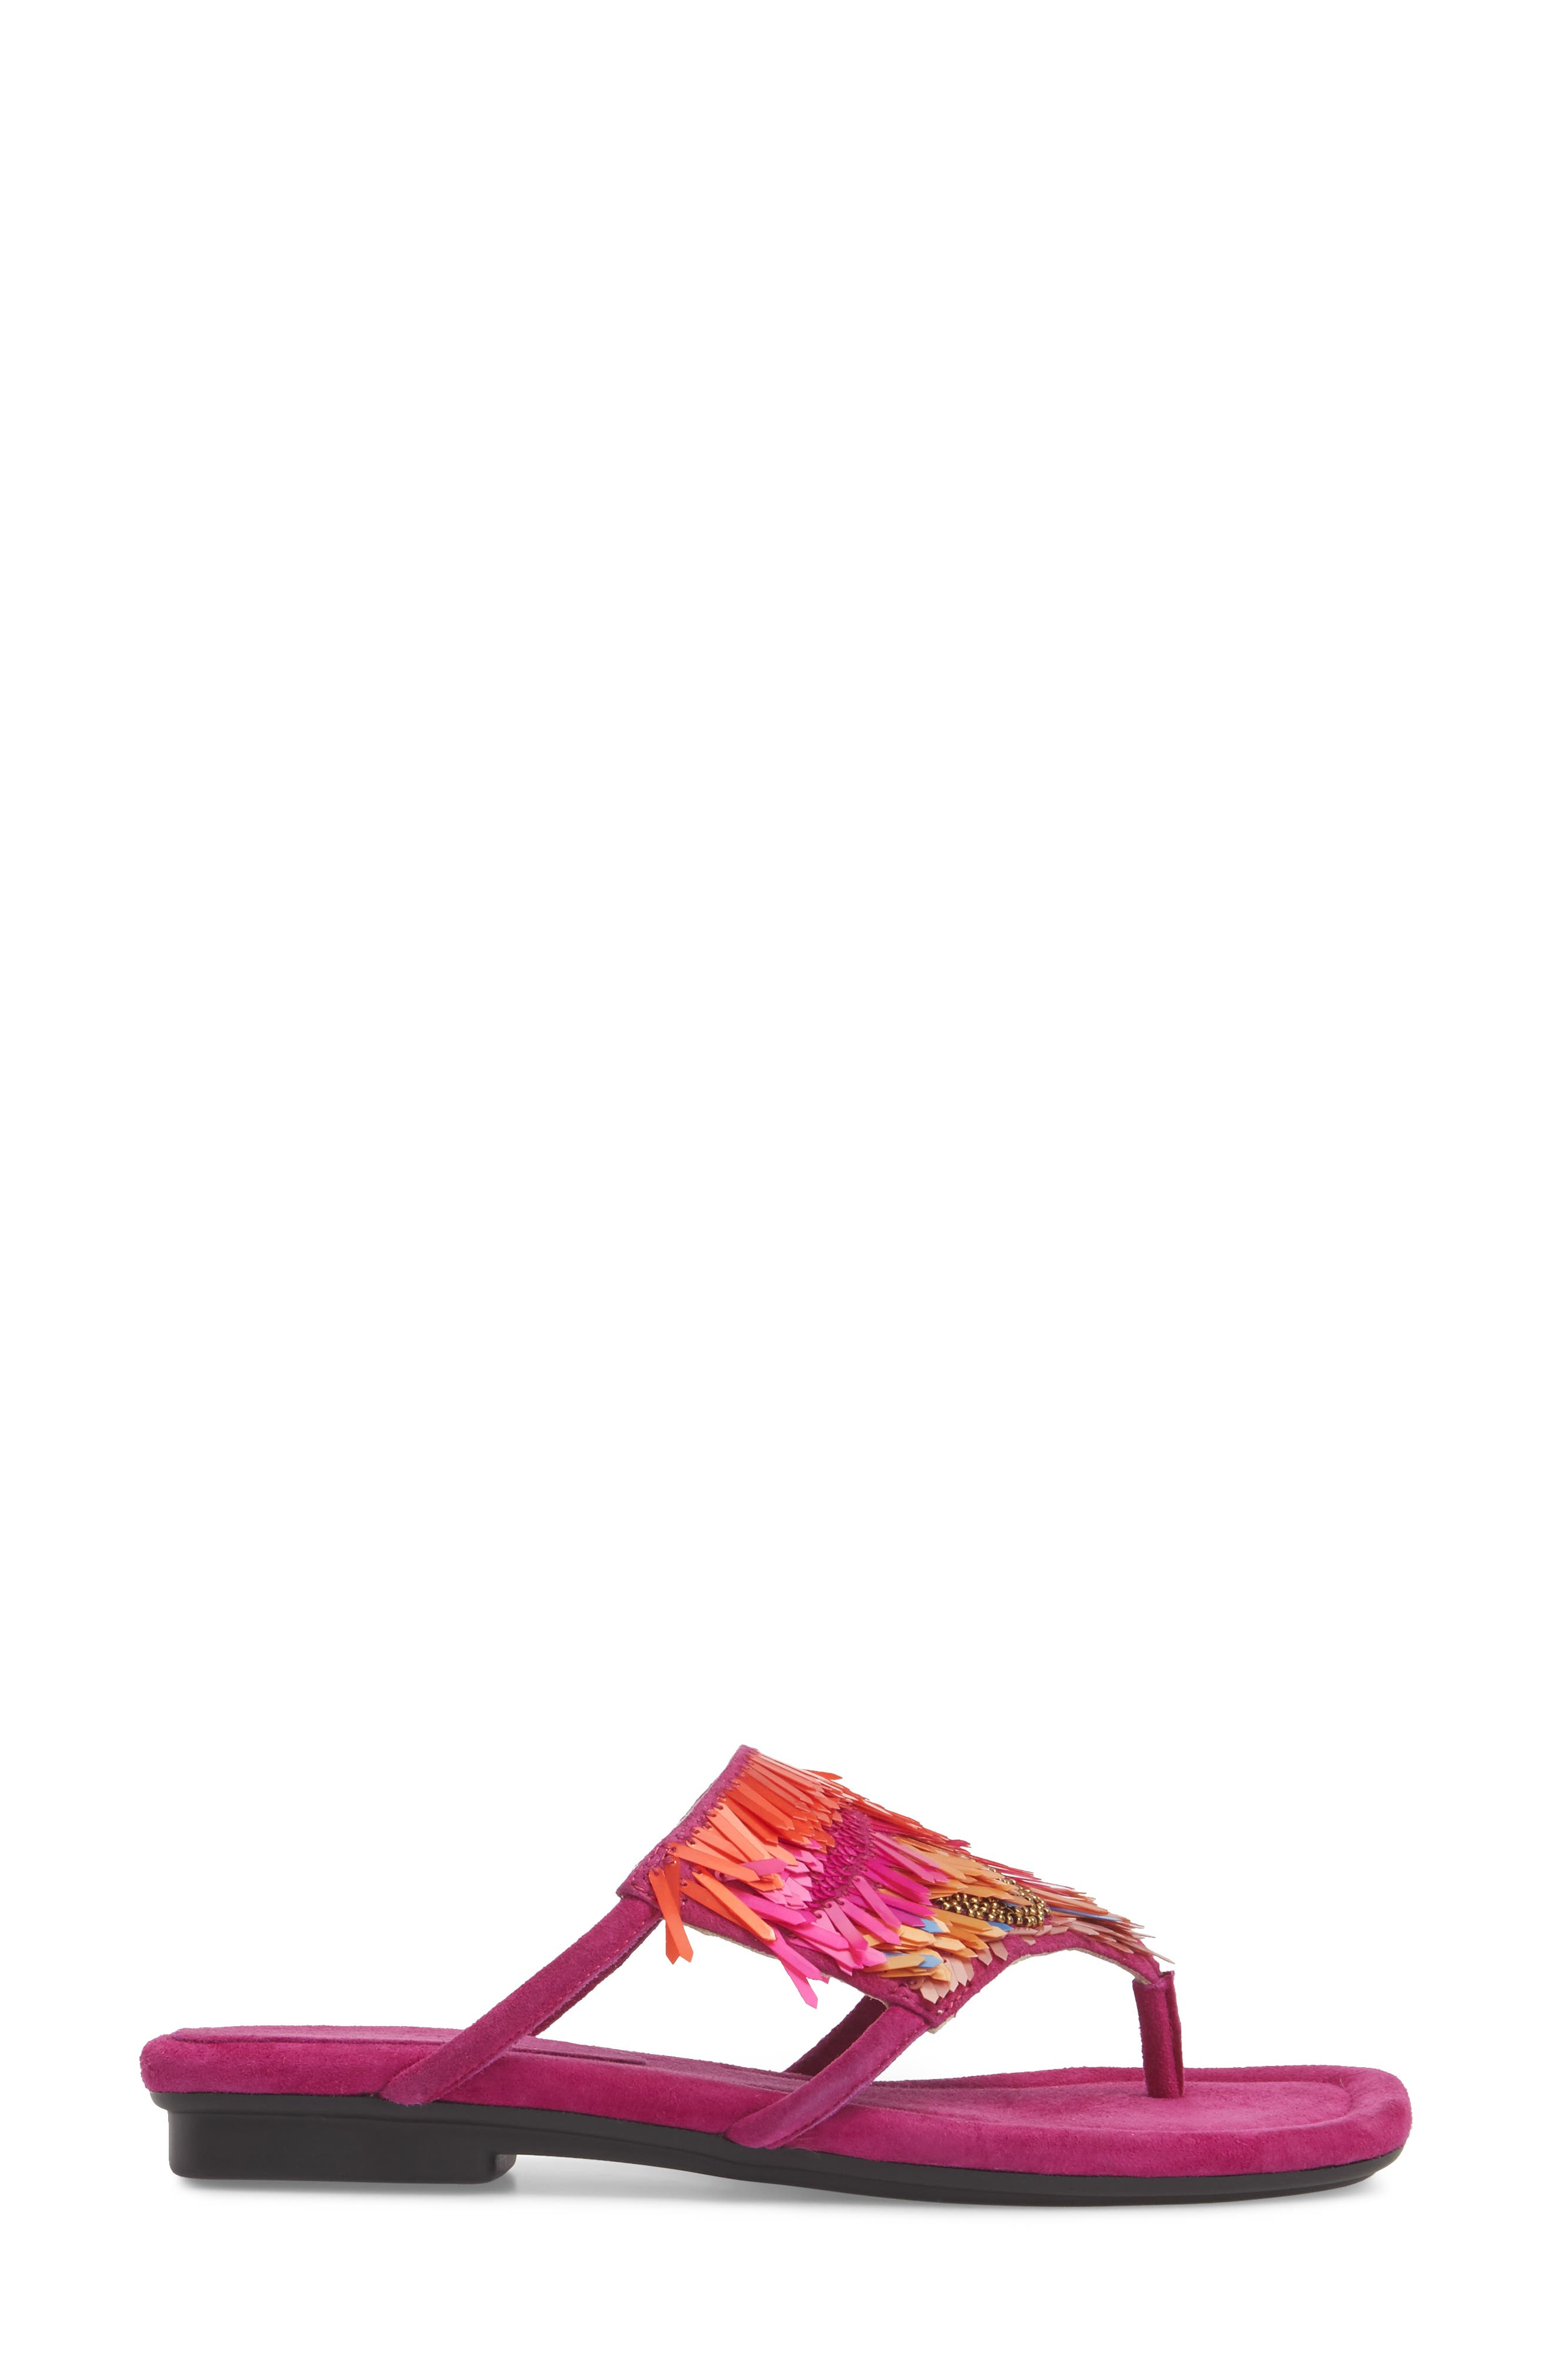 Kya Feather Sequin Sandal,                             Alternate thumbnail 3, color,                             Magenta Leather